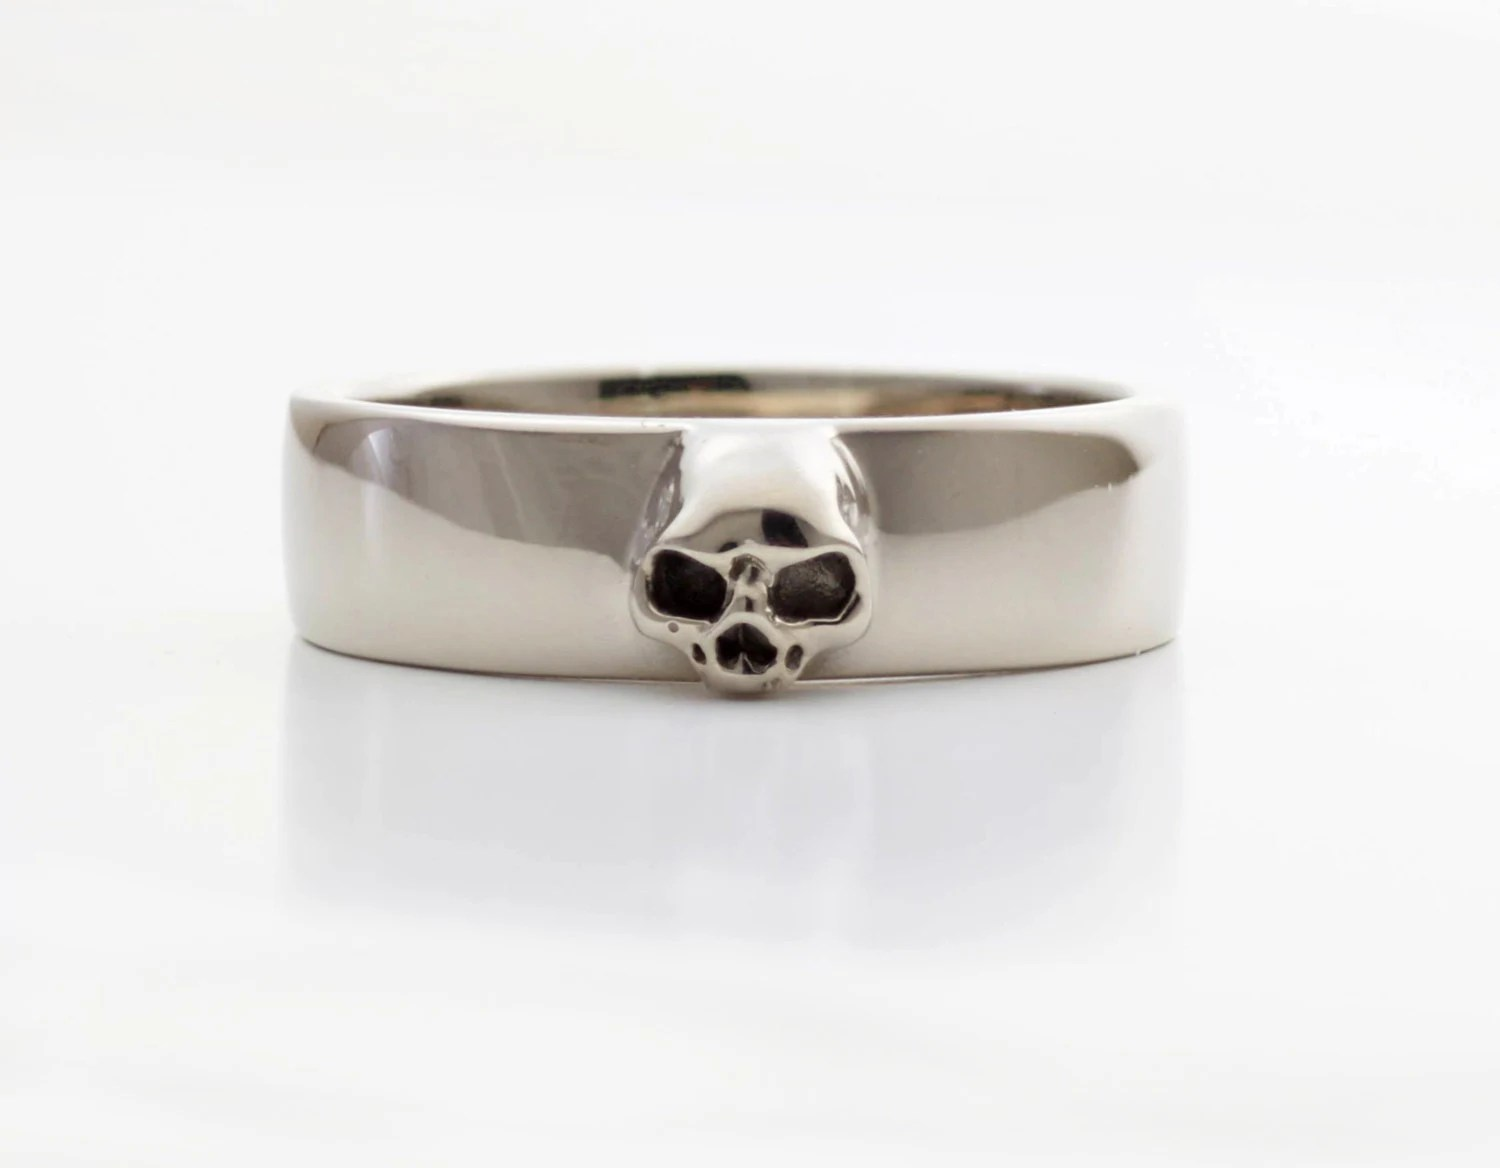 mens skull wedding ring white gold mens skull wedding rings Mens Skull Wedding Ring White Gold Grooms Skull Ring Goth Groom Ring Small Mens Skull Ring Psychobilly Wedding Band Wedding Set All Sizes